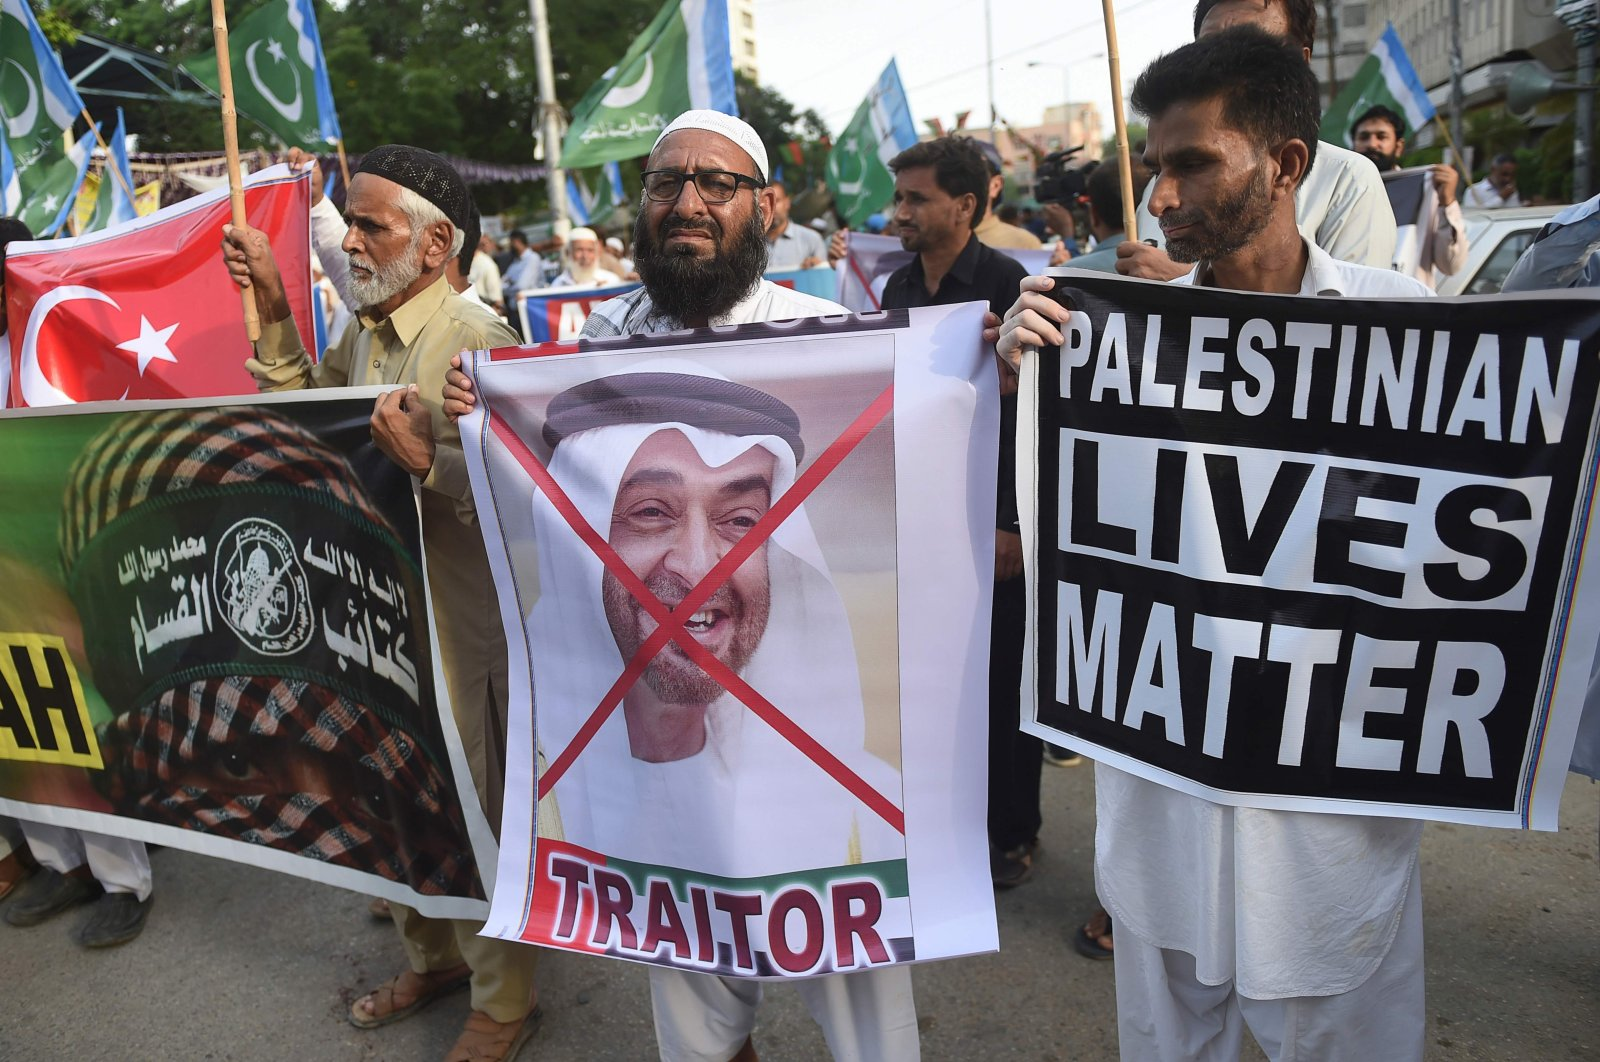 Activists of Jamaat-e-Islami (JI) Pakistan take part in a protest rally against theagreement between Israel and the United Arab Emirates to normalize diplomatic relations, in Karachi, Pakistan, Aug. 16, 2020. (AFP Photo)